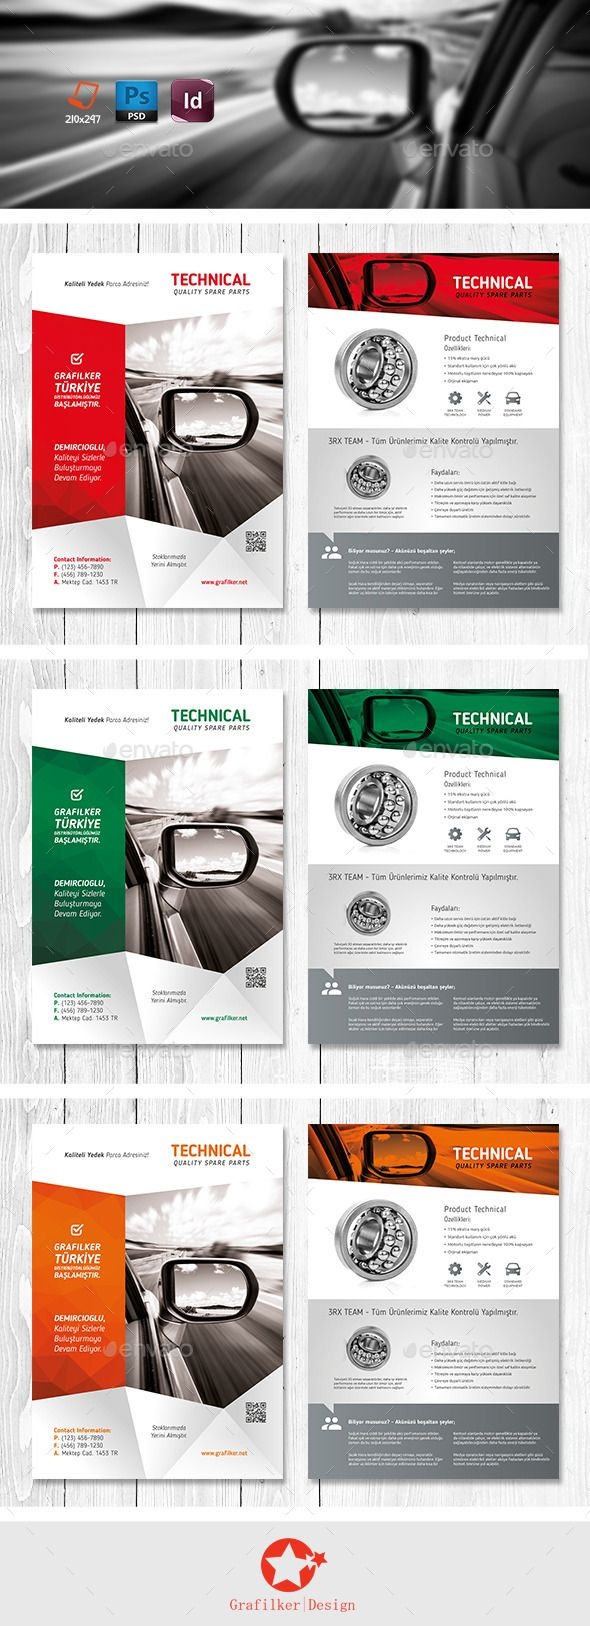 technical brochure template - 817 best images about type layout inspiration on